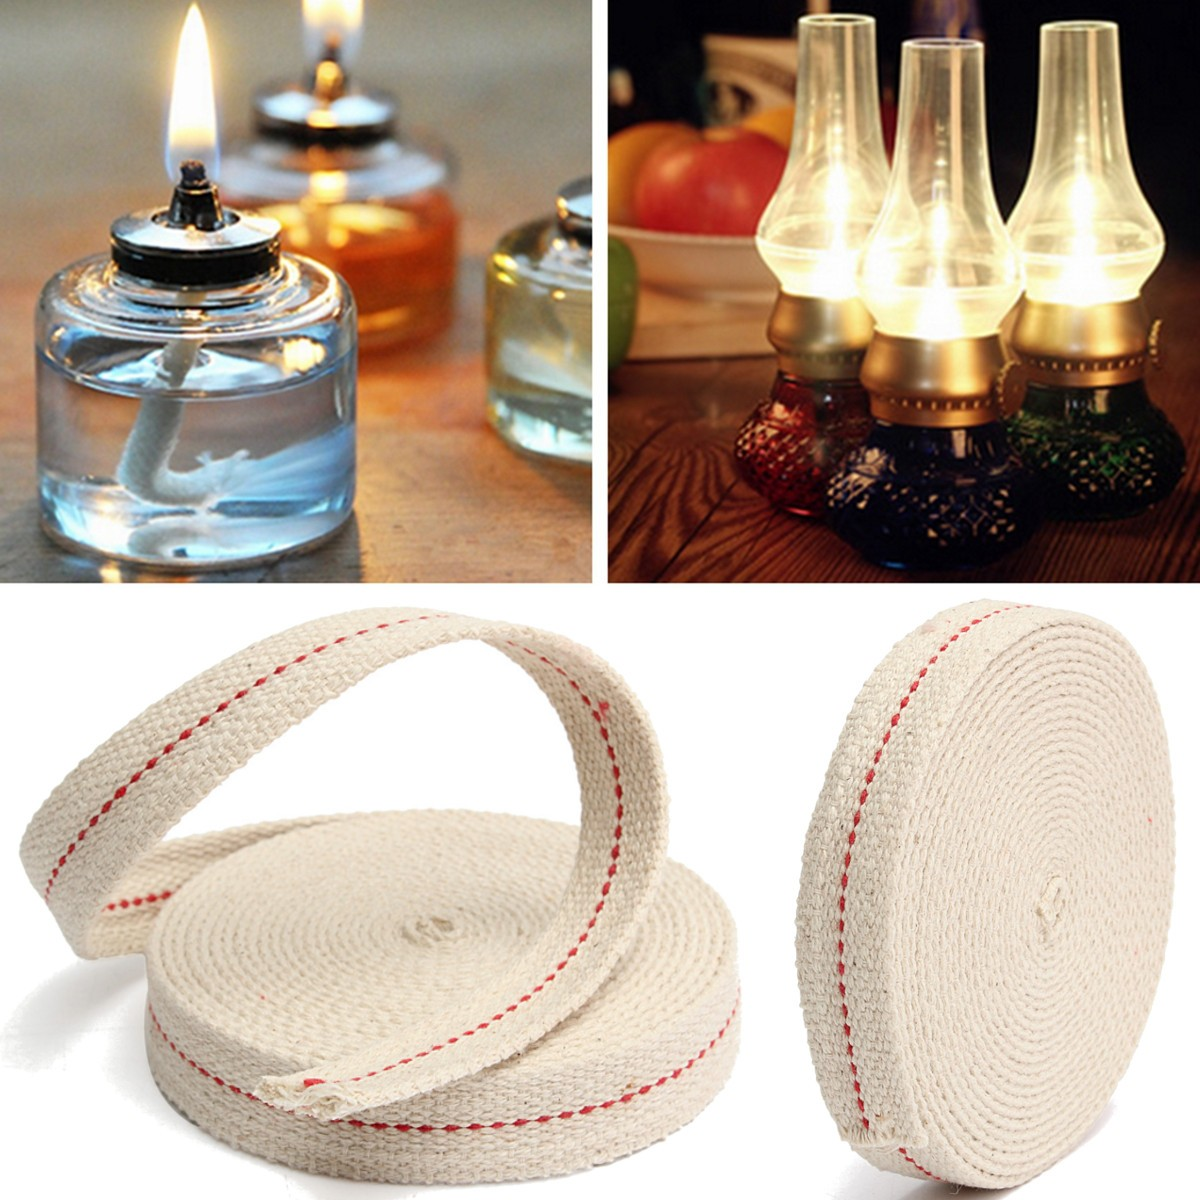 "Oil Lamp Mate 15 Foot Roll 3 4"" Inch Flat Cotton Oil Lantern or Oil Lamp Wick with Purple Stitch by"